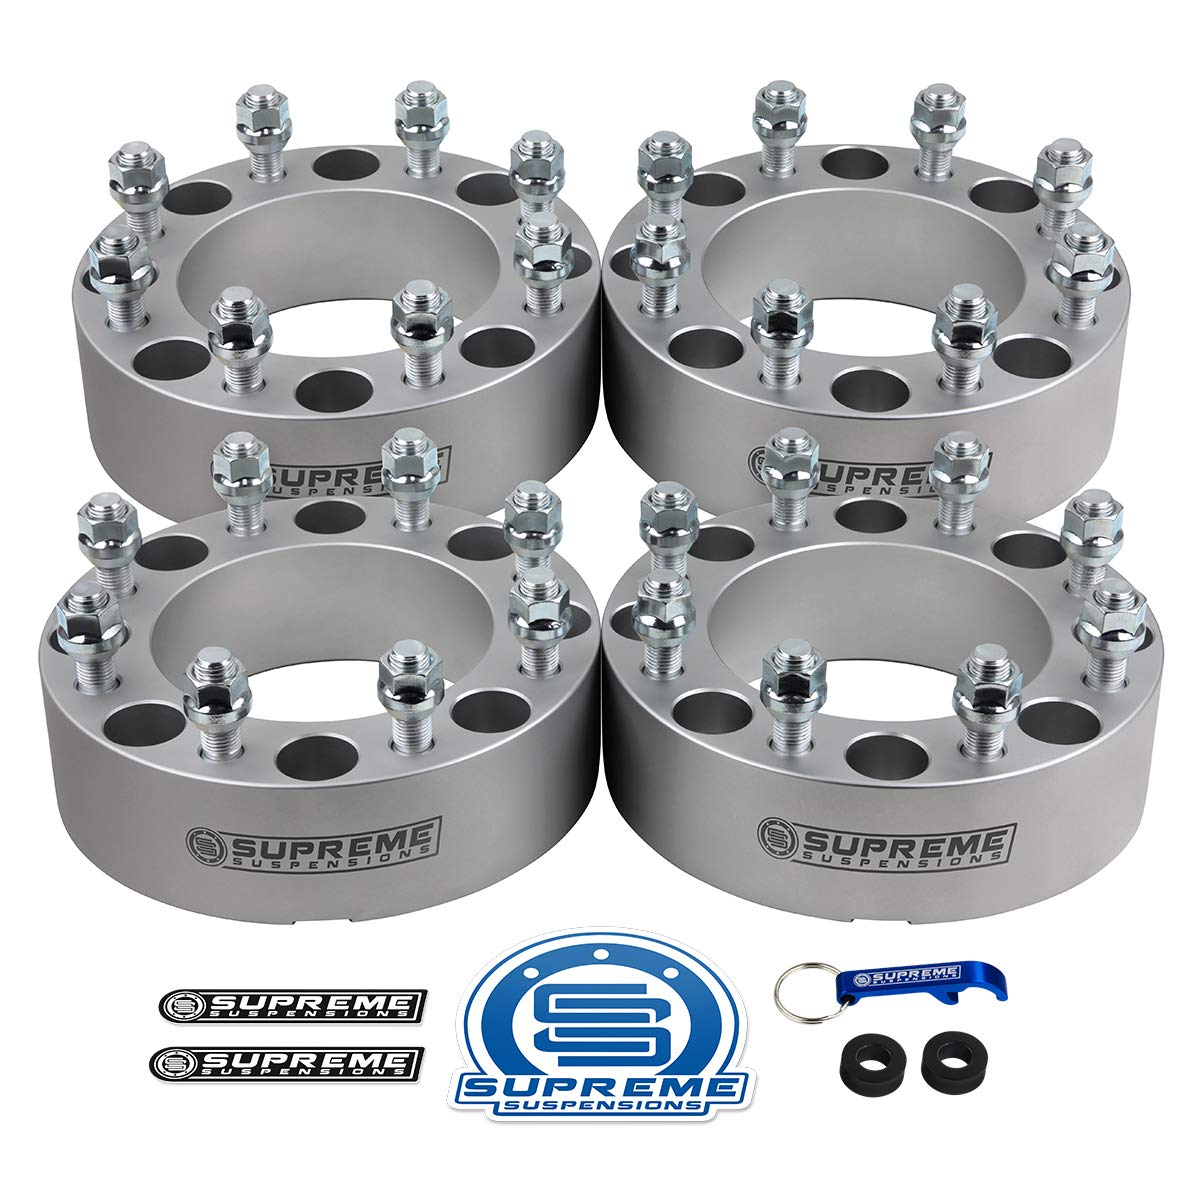 4pc 8x165.1mm with 9//16x18 Studs Supreme Suspensions - Black 1994-2009 Dodge Ram 2500 2 Wheel Spacers 8x6.5